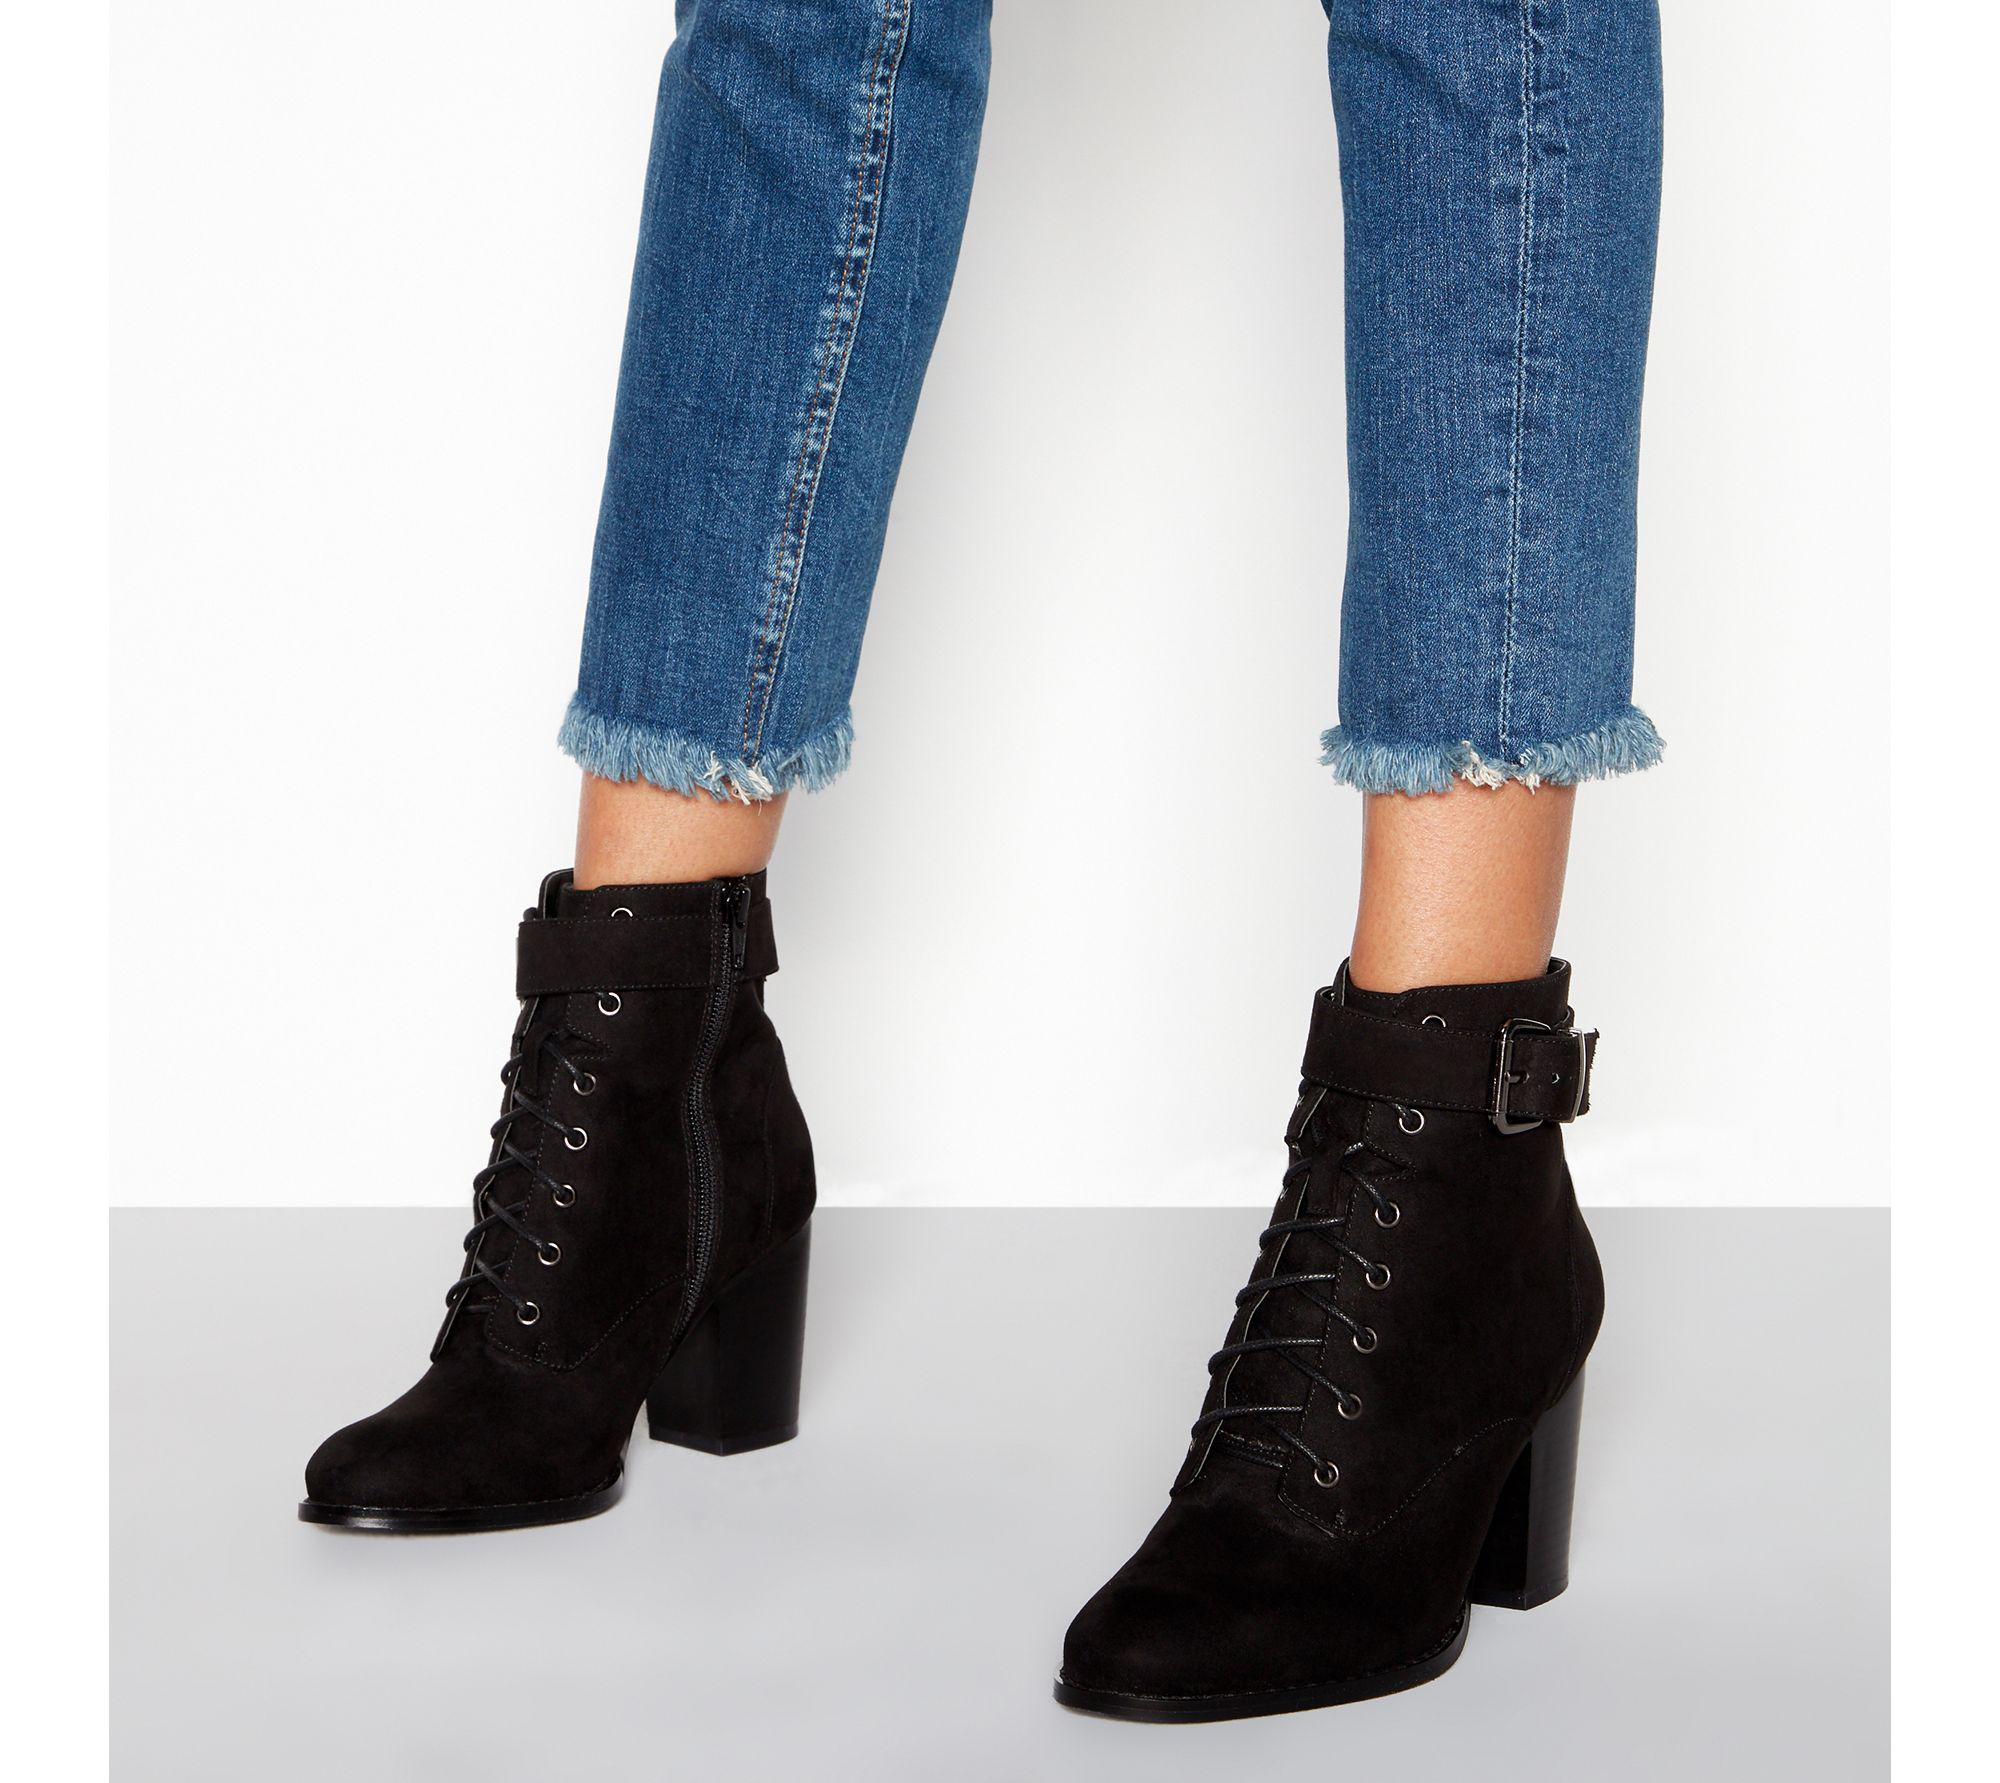 7f1435859e94 Faith. Women s Black Suedette Lace-up  willoughby  Block Heel Wide Fit  Ankle Boots